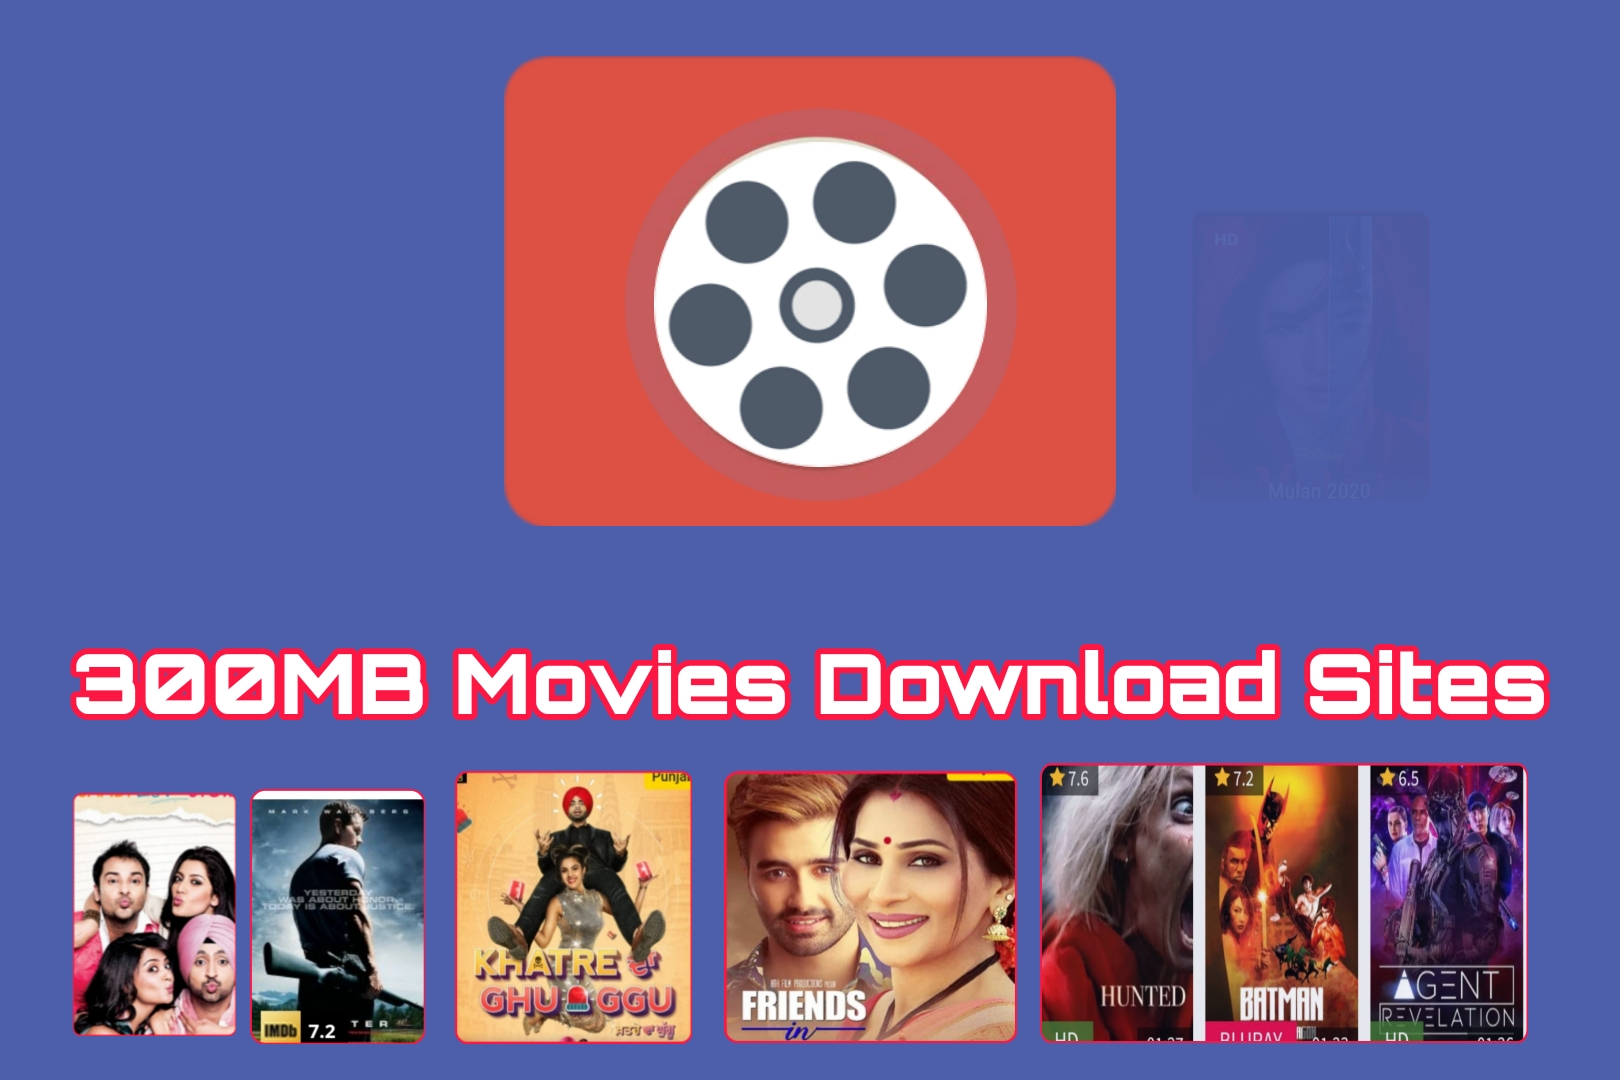 Sites to Download 300MB Movies for Free